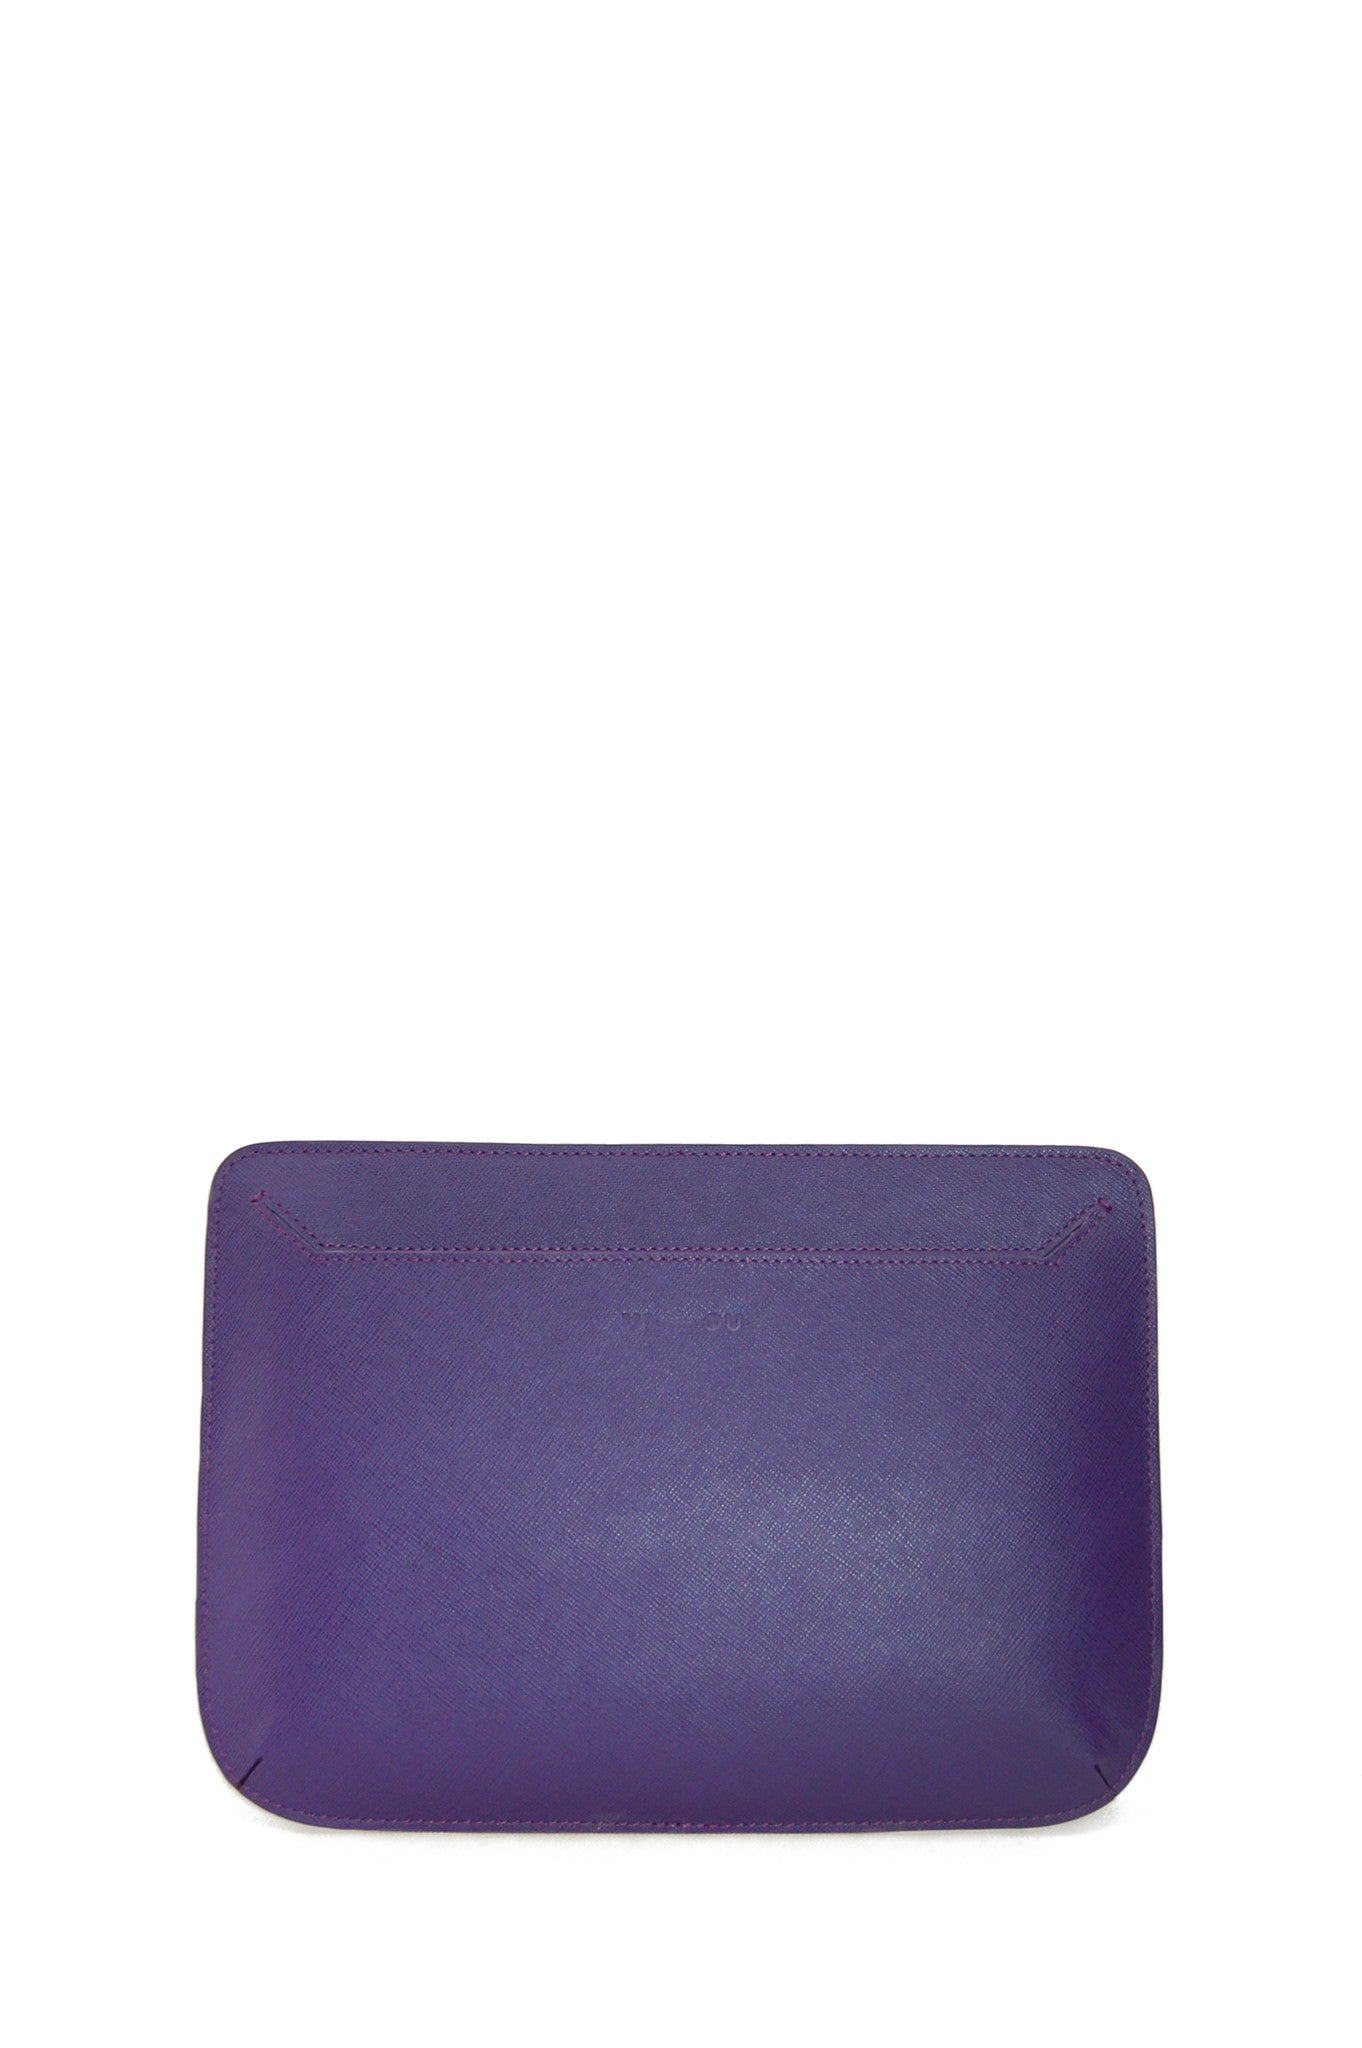 Chaplin tablet mini case purple